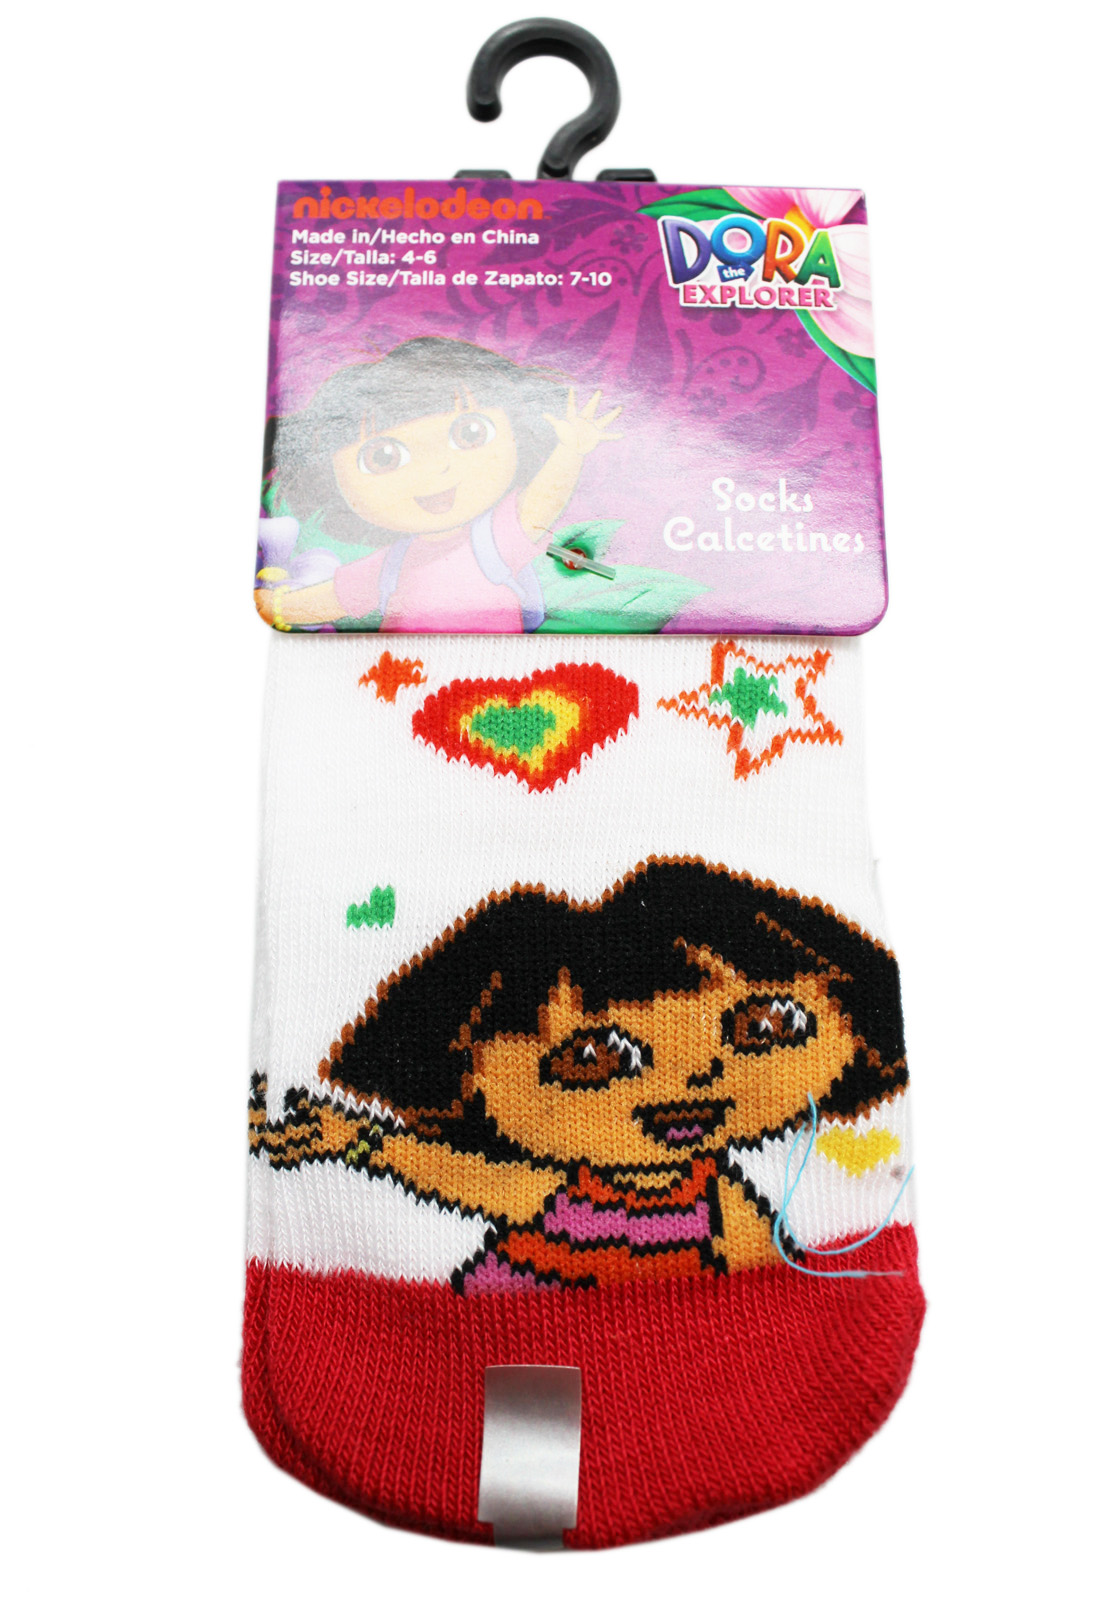 2 Pairs, Size 6-8 Dora the Explorer Light Blue Floral Stylized Kids Socks